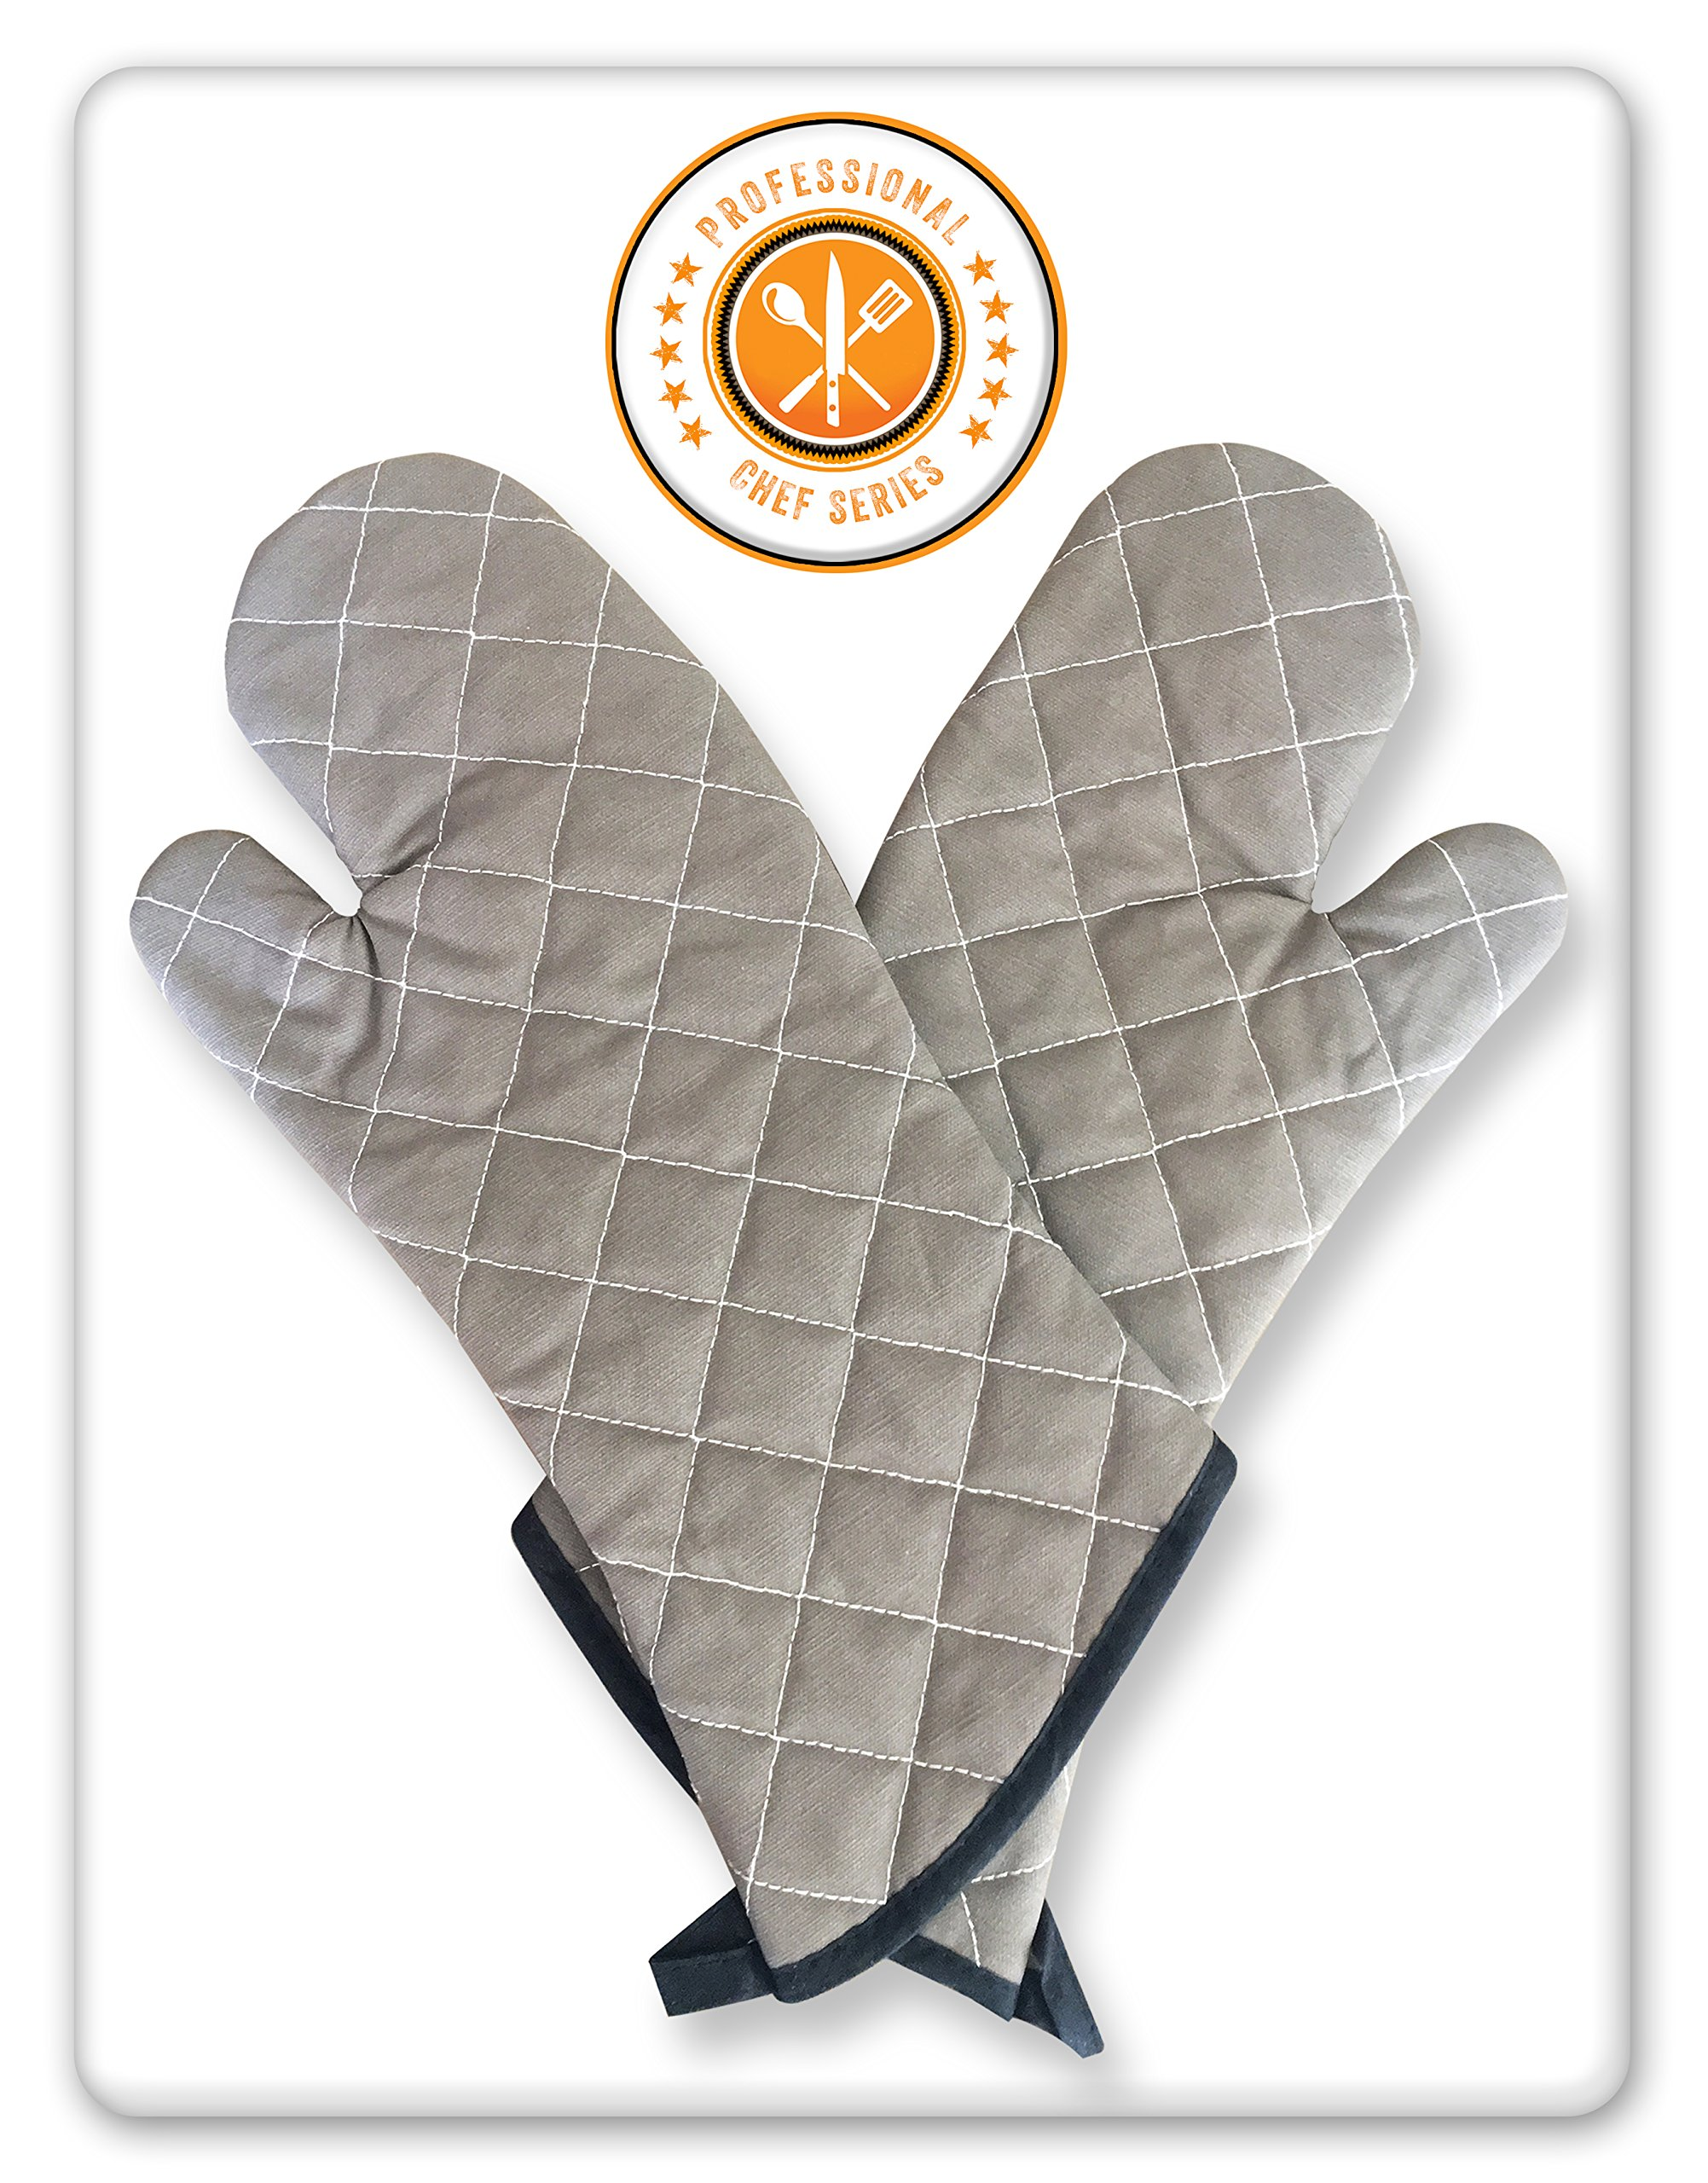 Oven Mitts Professional Chef Grey. 5 Sets. Extra Long-One Size Fits All. Added Protection from Grease Splatter, Steam Burns. Ideal for Super Hot Ovens, Deep Fried Turkey, BBQ and Fireplace.